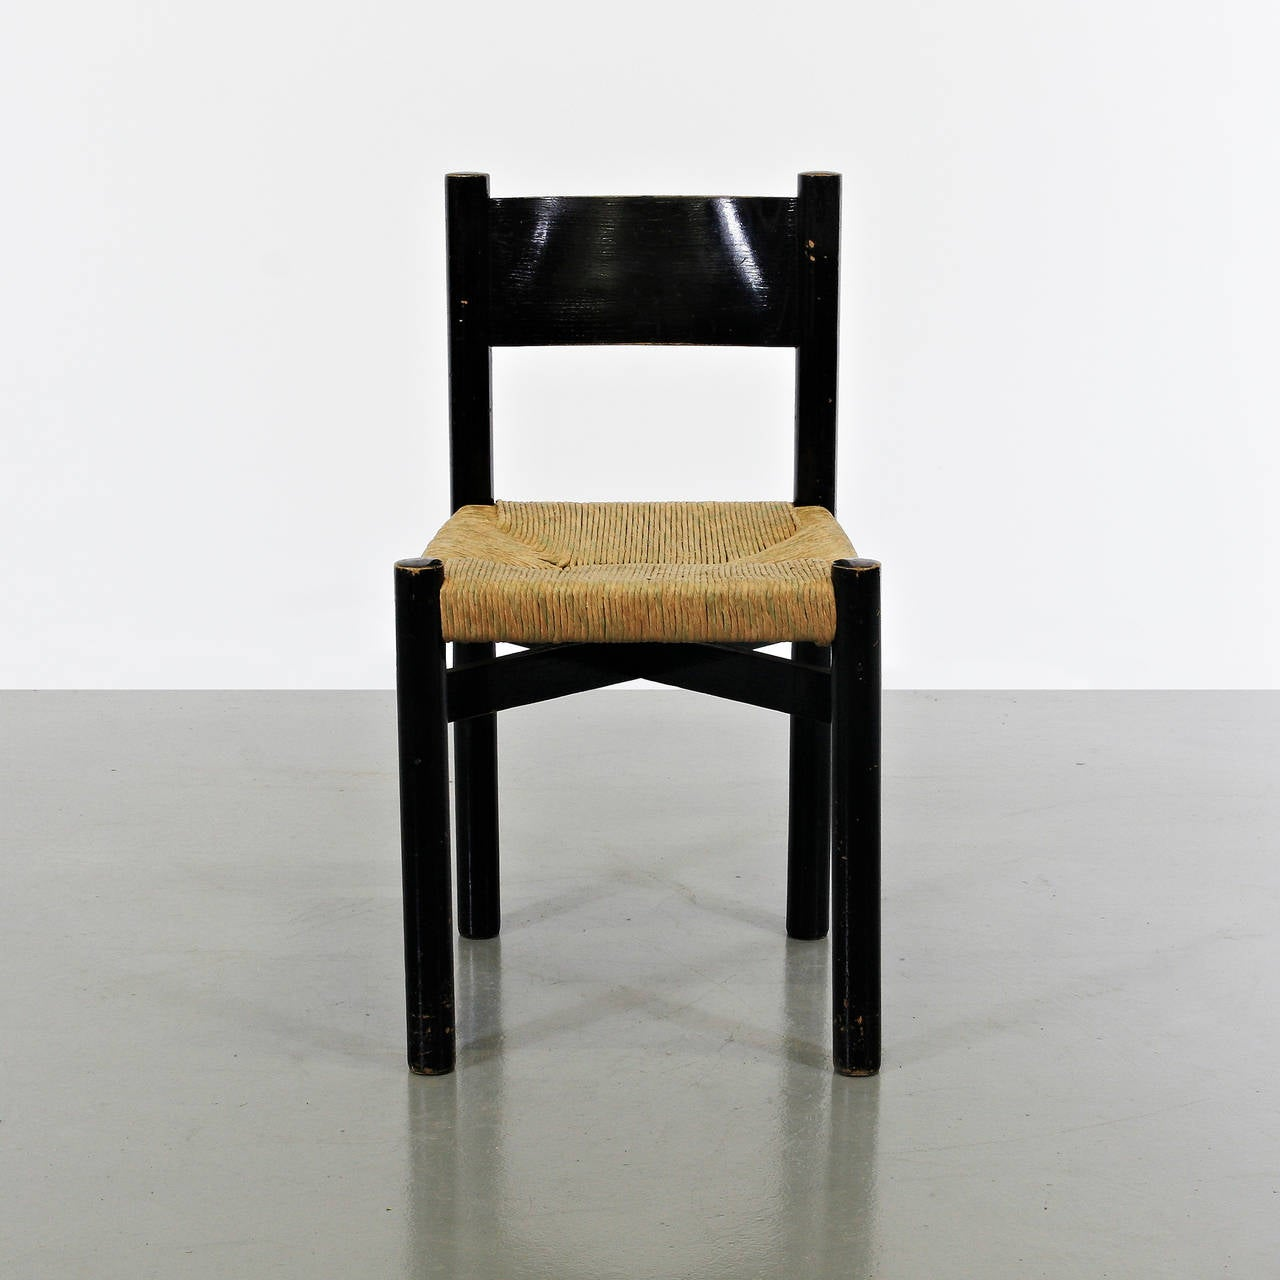 Dining chair, model Meribel, designed by Charlotte Perriand, circa 1950. Manufactured by Georges Blanchon (France) Black lacquered wood base and legs, and original rush seat.  In good original condition, with minor wear consistent with age and